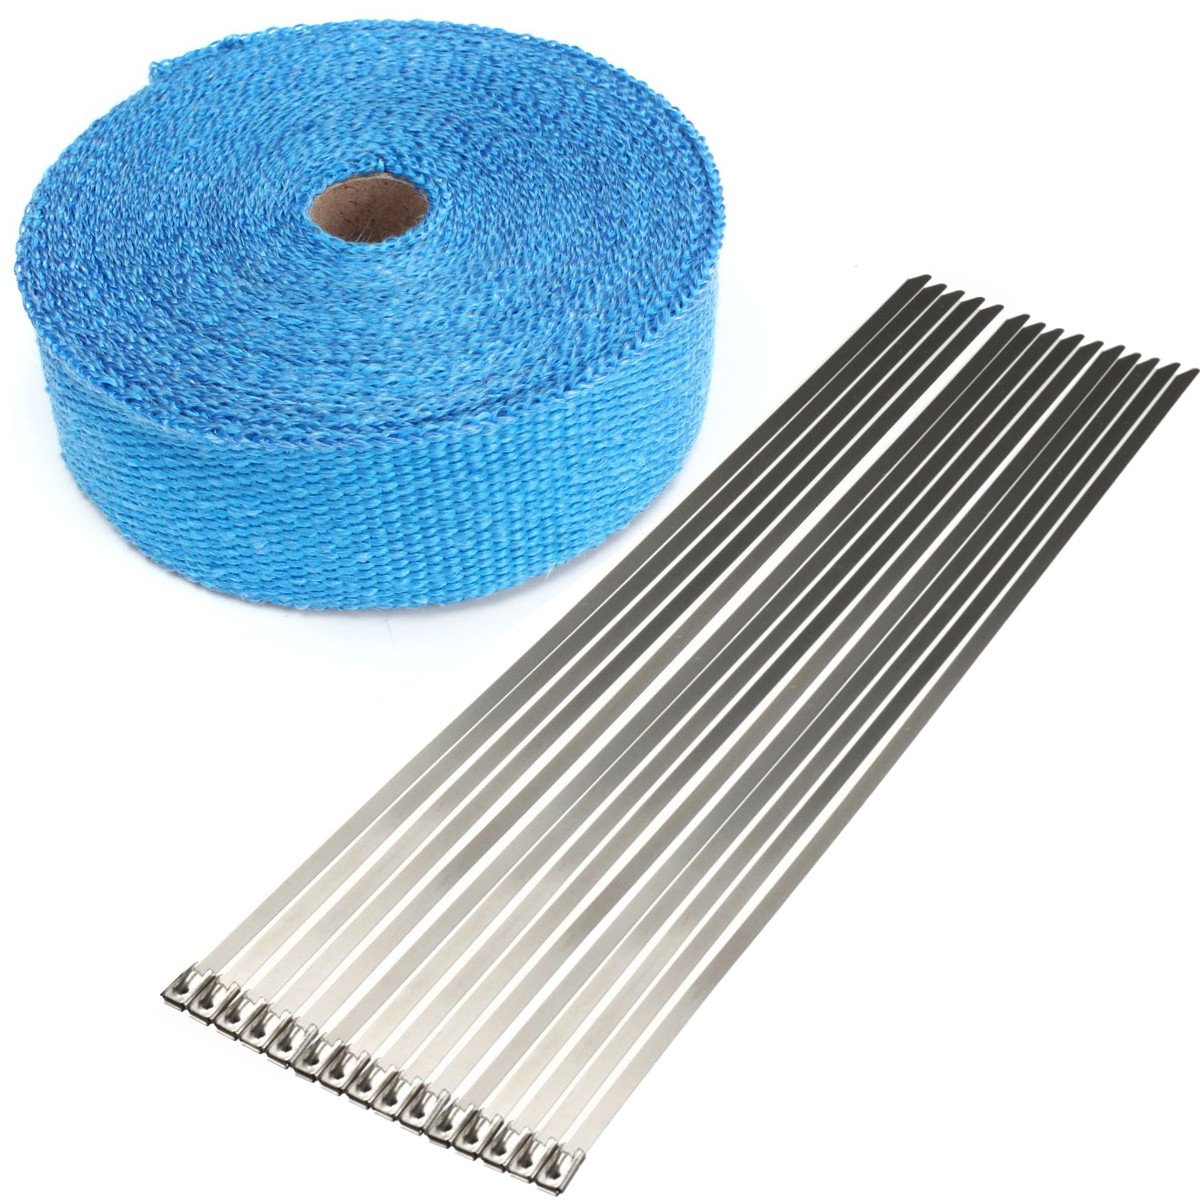 Buy 15m Exhaust Pipe Heat Wrap Manifold Header Insulating Roll Tape with 15 Ties